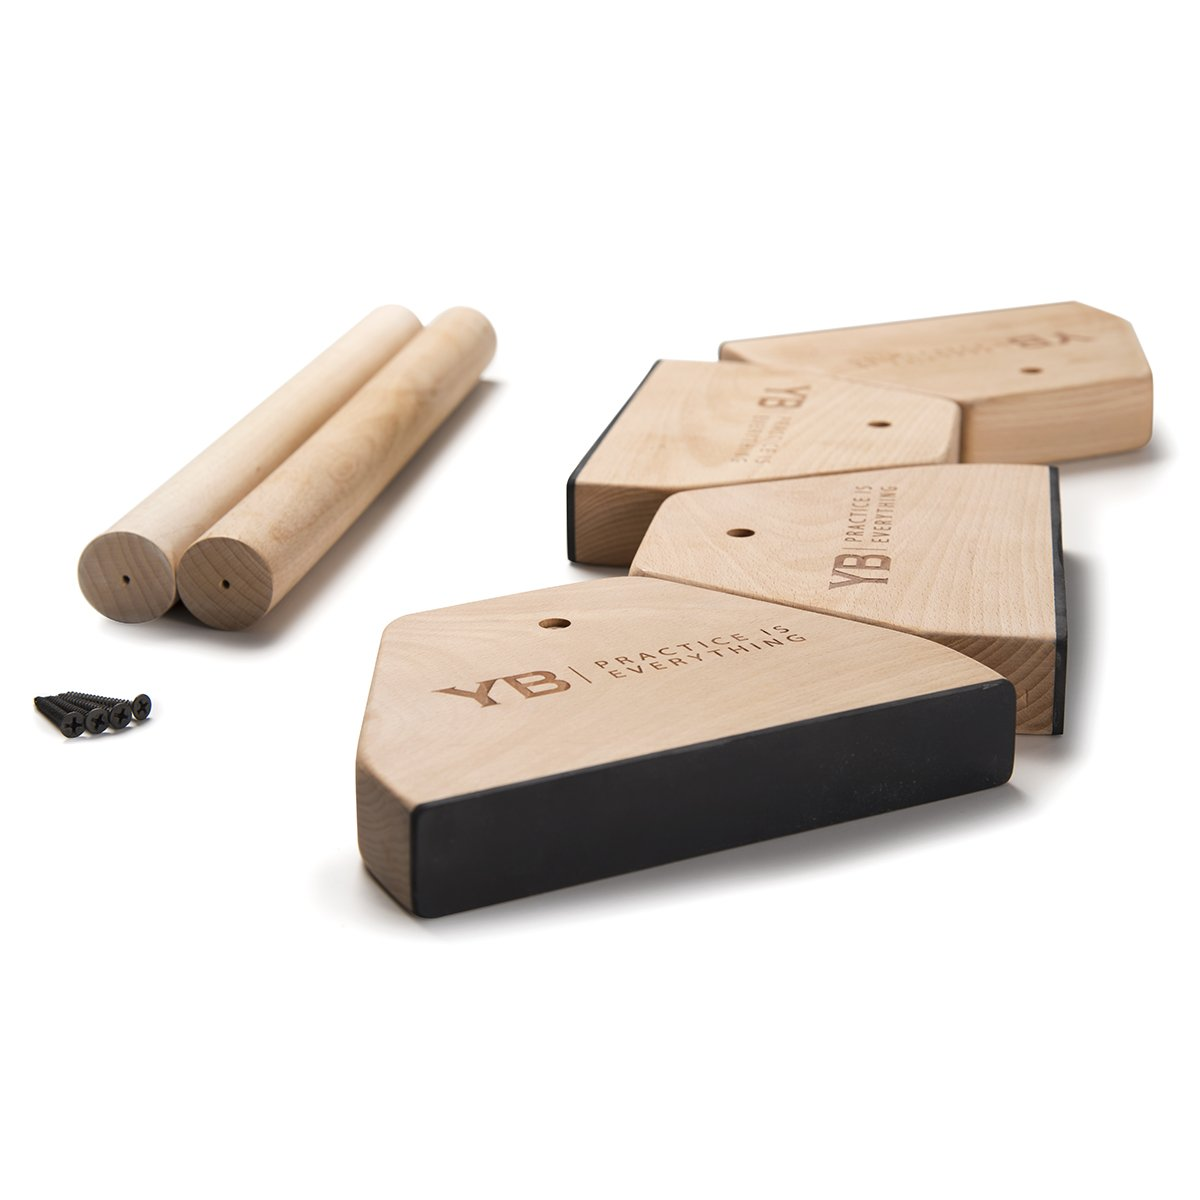 YOGABODY Birch Wood Parallettes (Set of 2)   Beautiful, Smooth, Non-Slip Yoga & Gymnastic Training Tool for L-Sits, Lolasana, Handstand Pushups, Jump Backs & More by YOGABODY (Image #5)